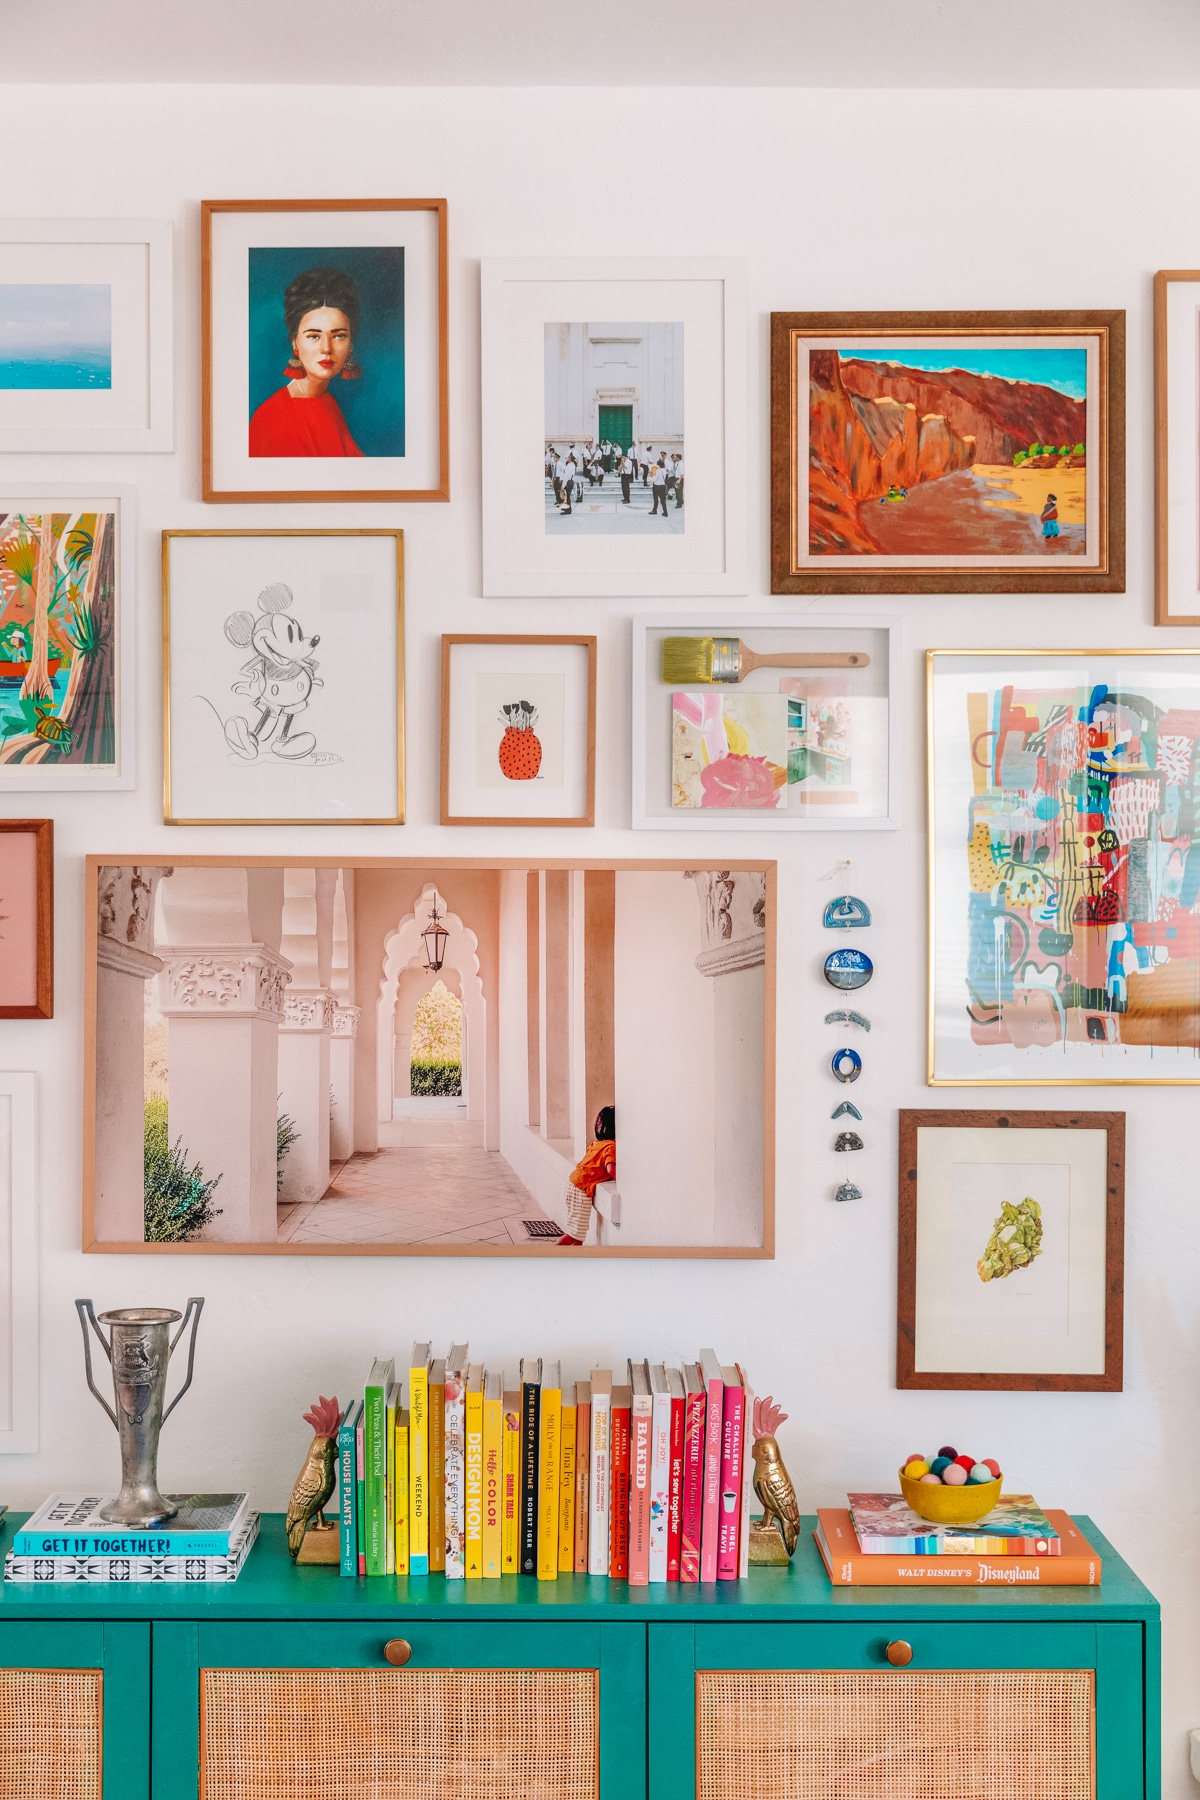 How To Make A Gallery Wall A Guide To Selecting Arranging Hanging Art Studio Diy